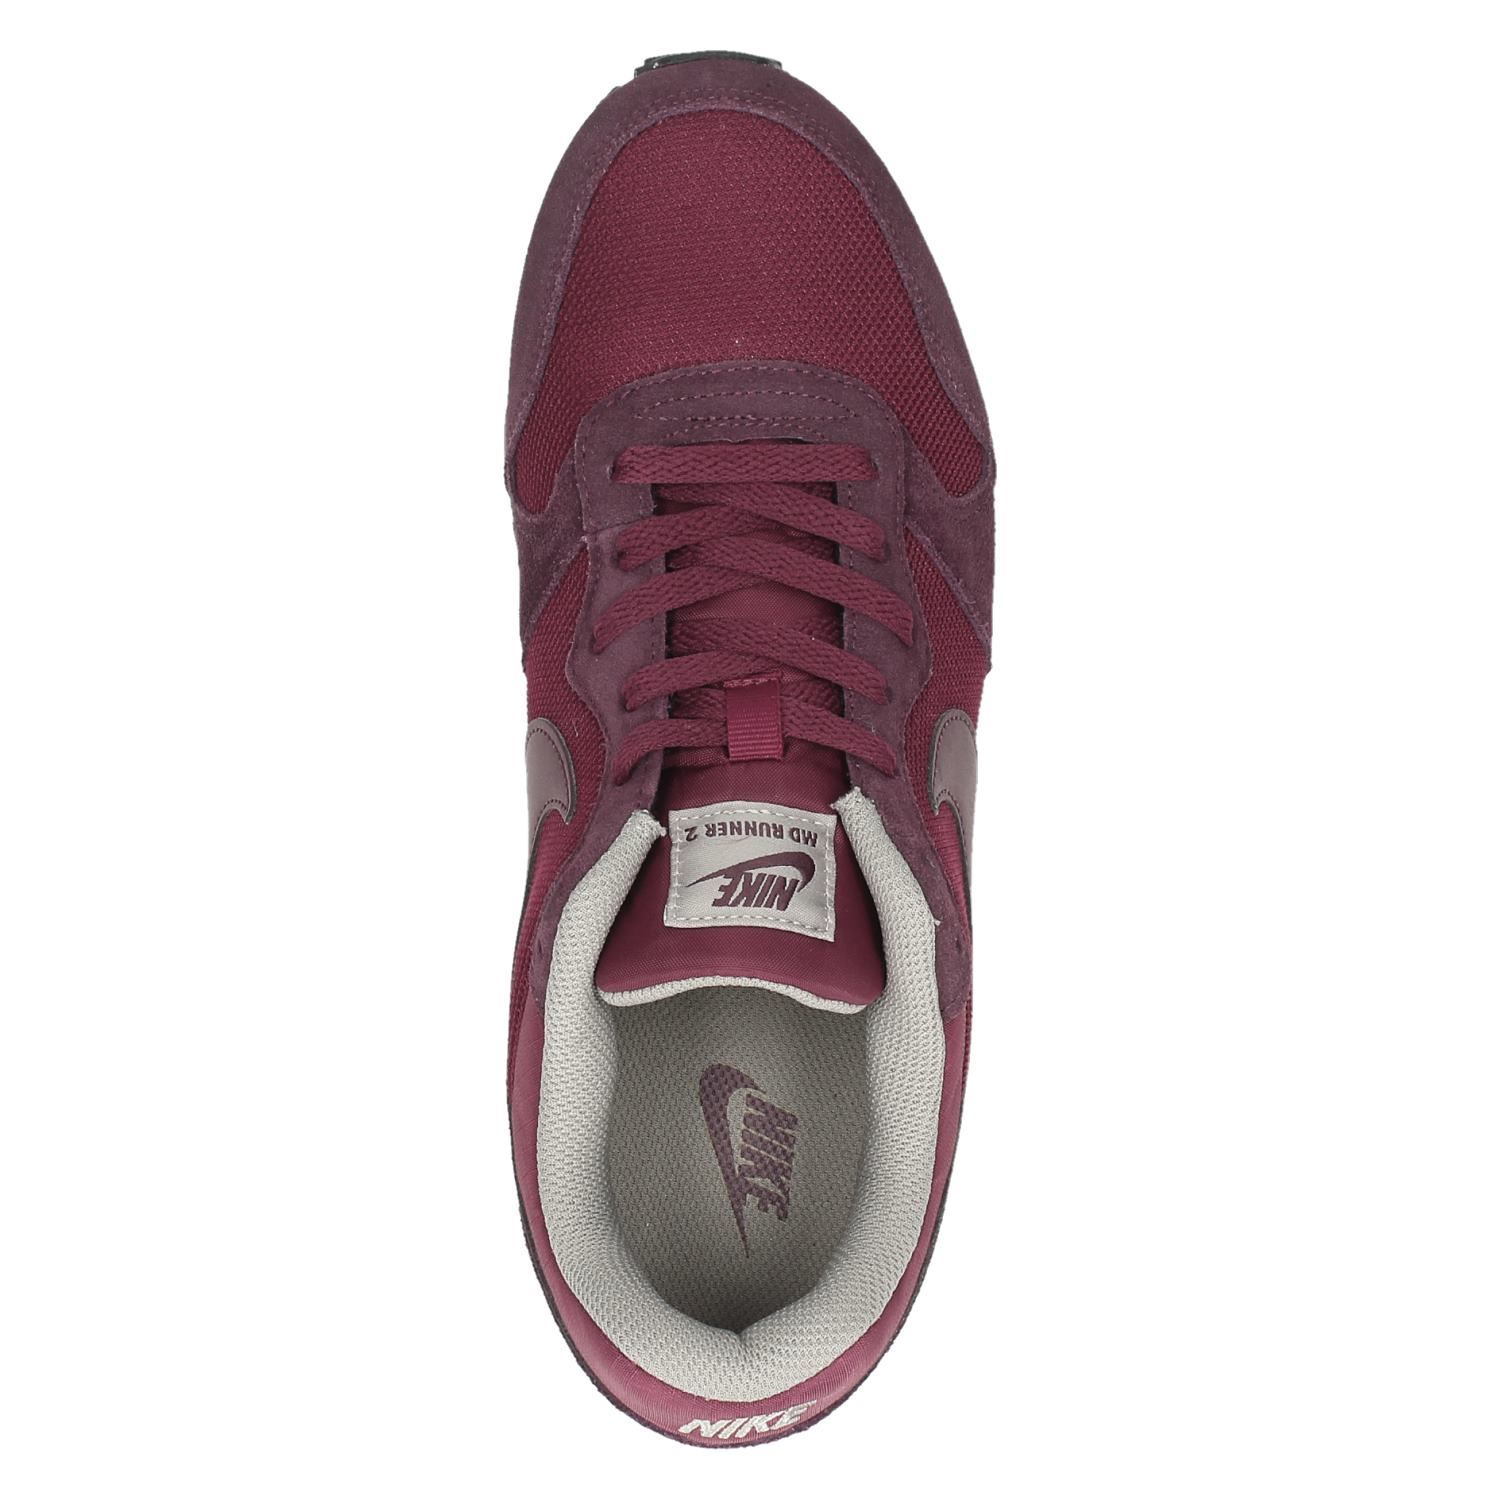 73e32162f57 Nike MD Runner 2 heren lage sneakers. Previous